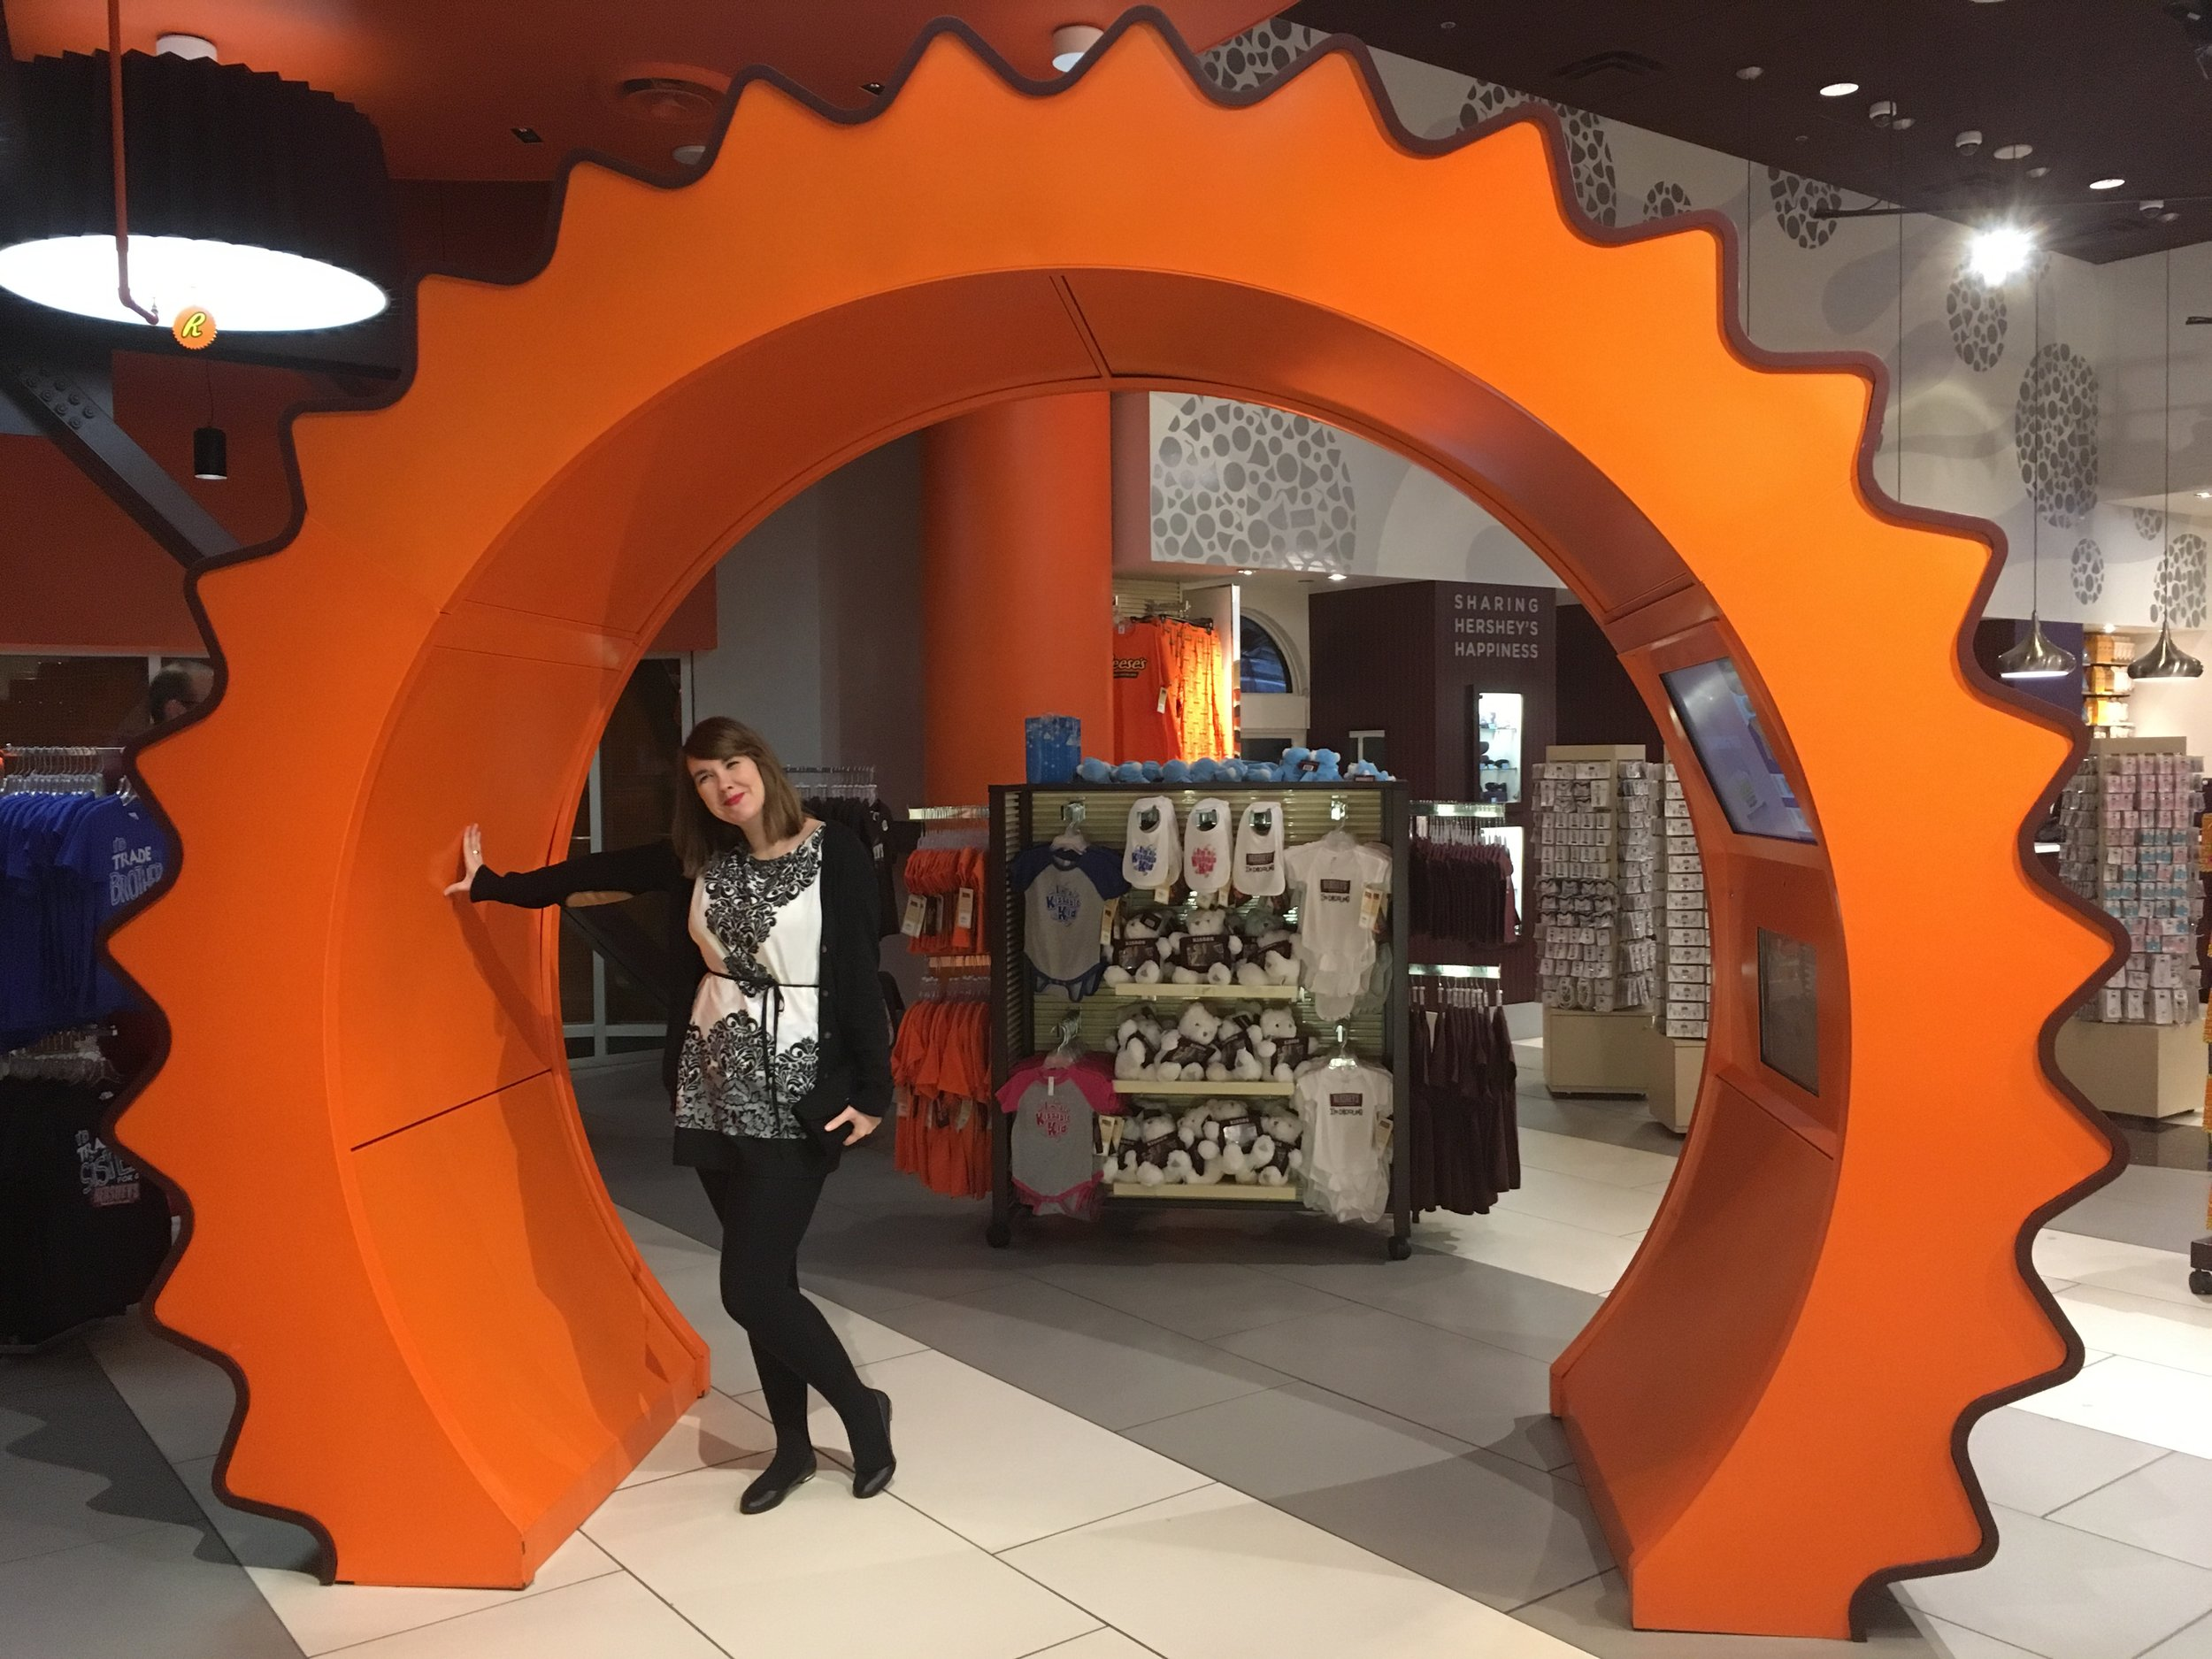 Reese's Store